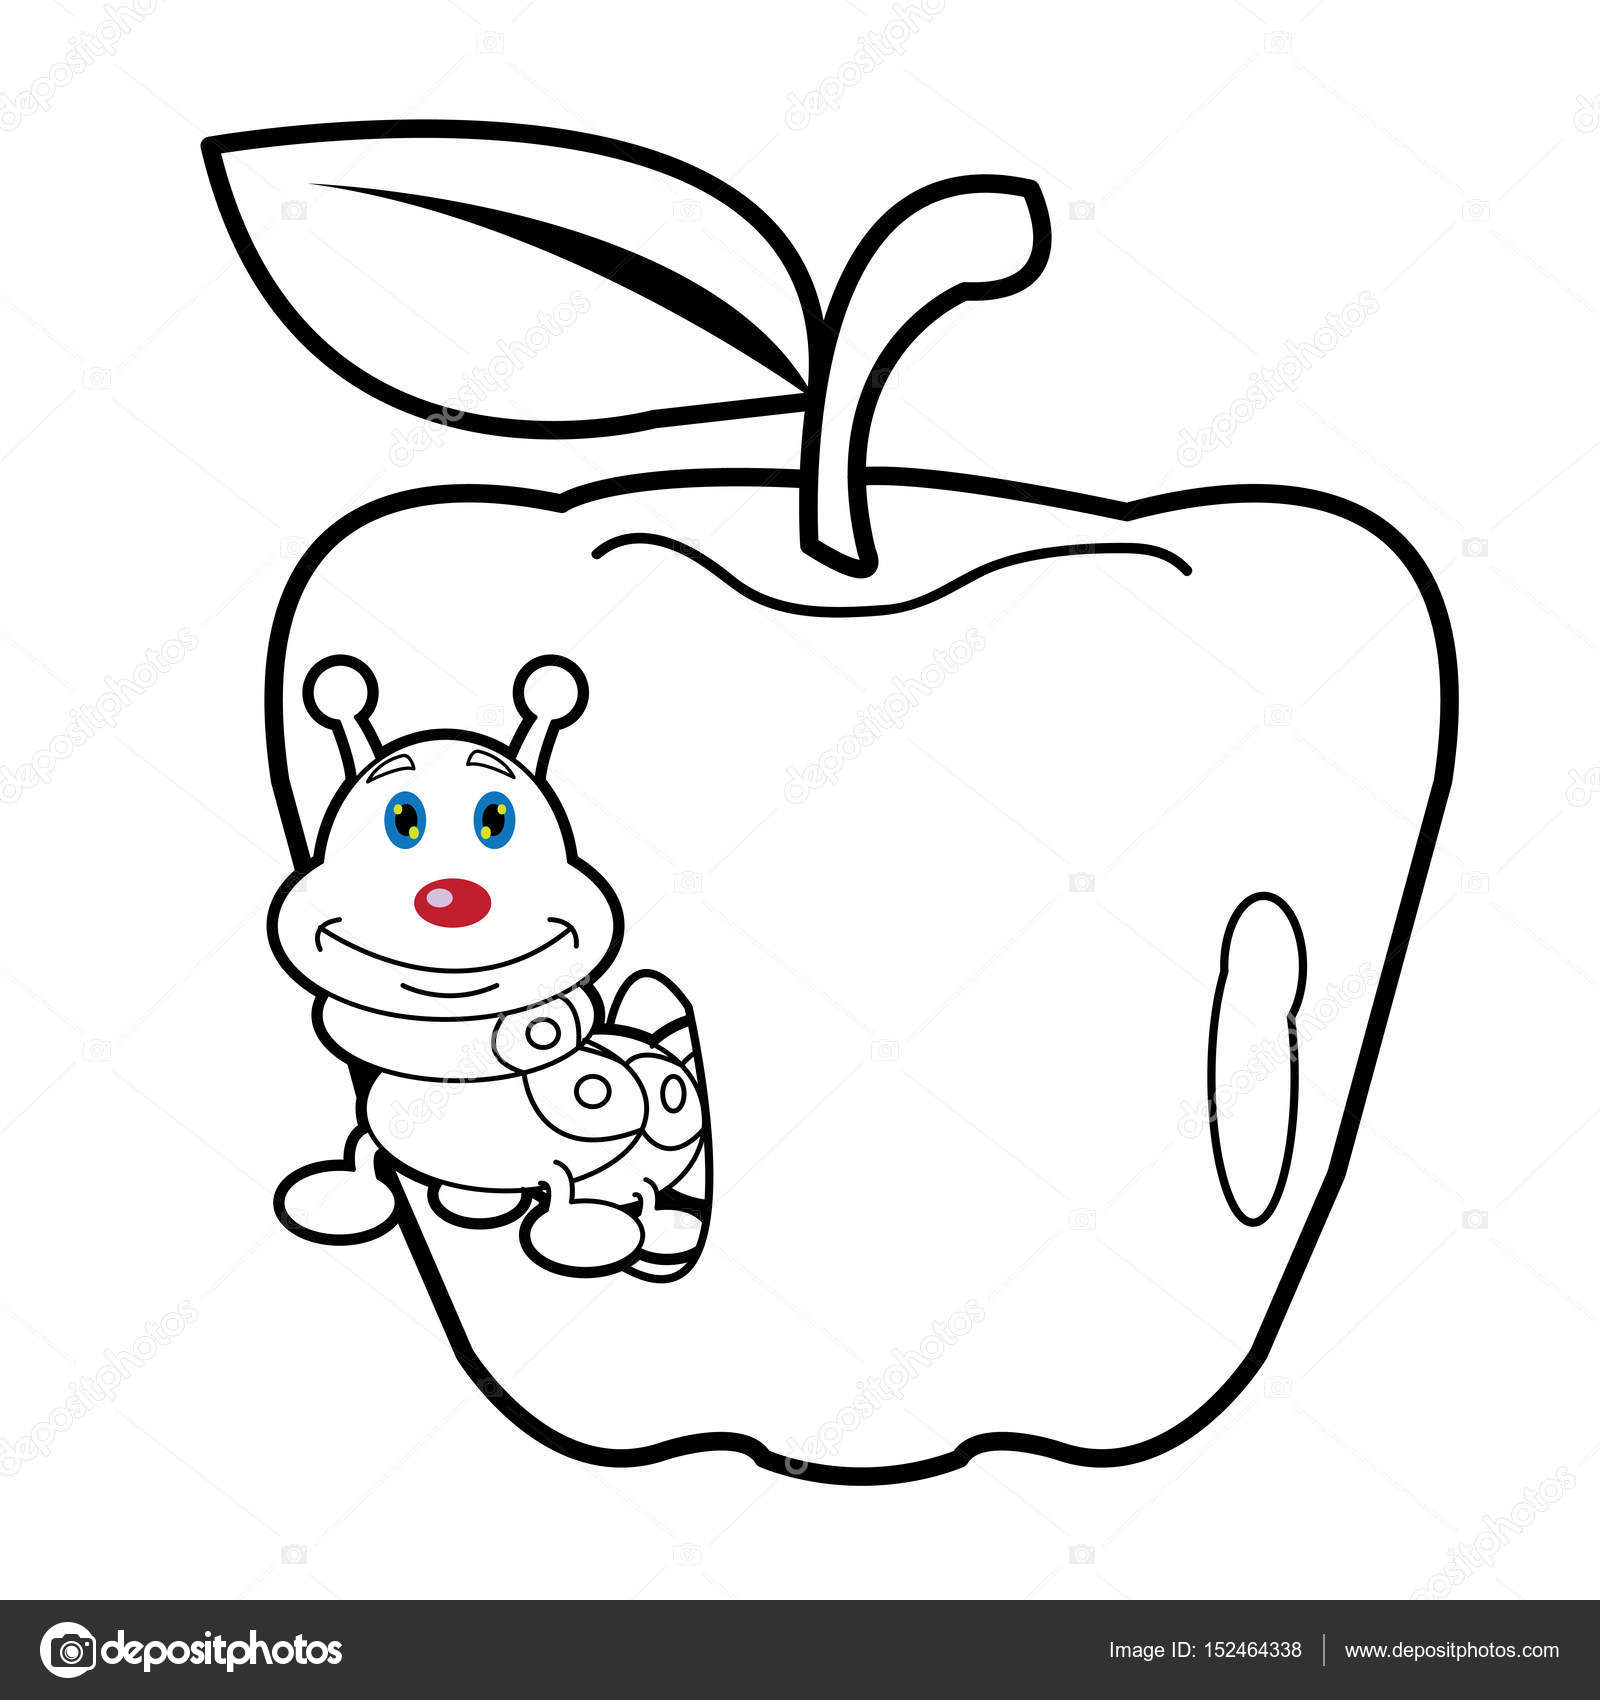 Larva Worm And Apple Cartoon Coloring Page For Toddle Stock Vector